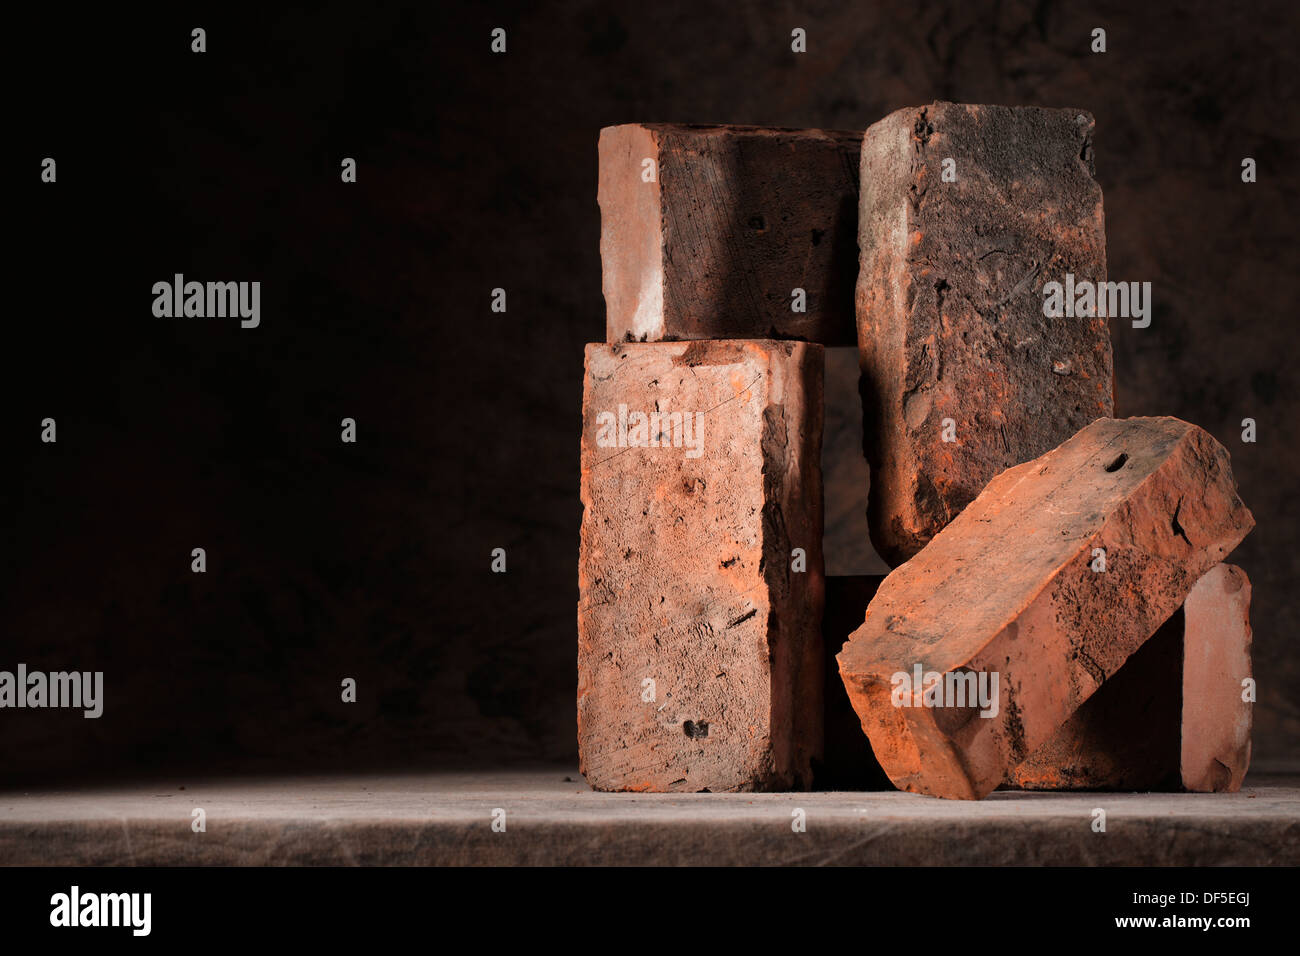 Still life with old used bricks. - Stock Image